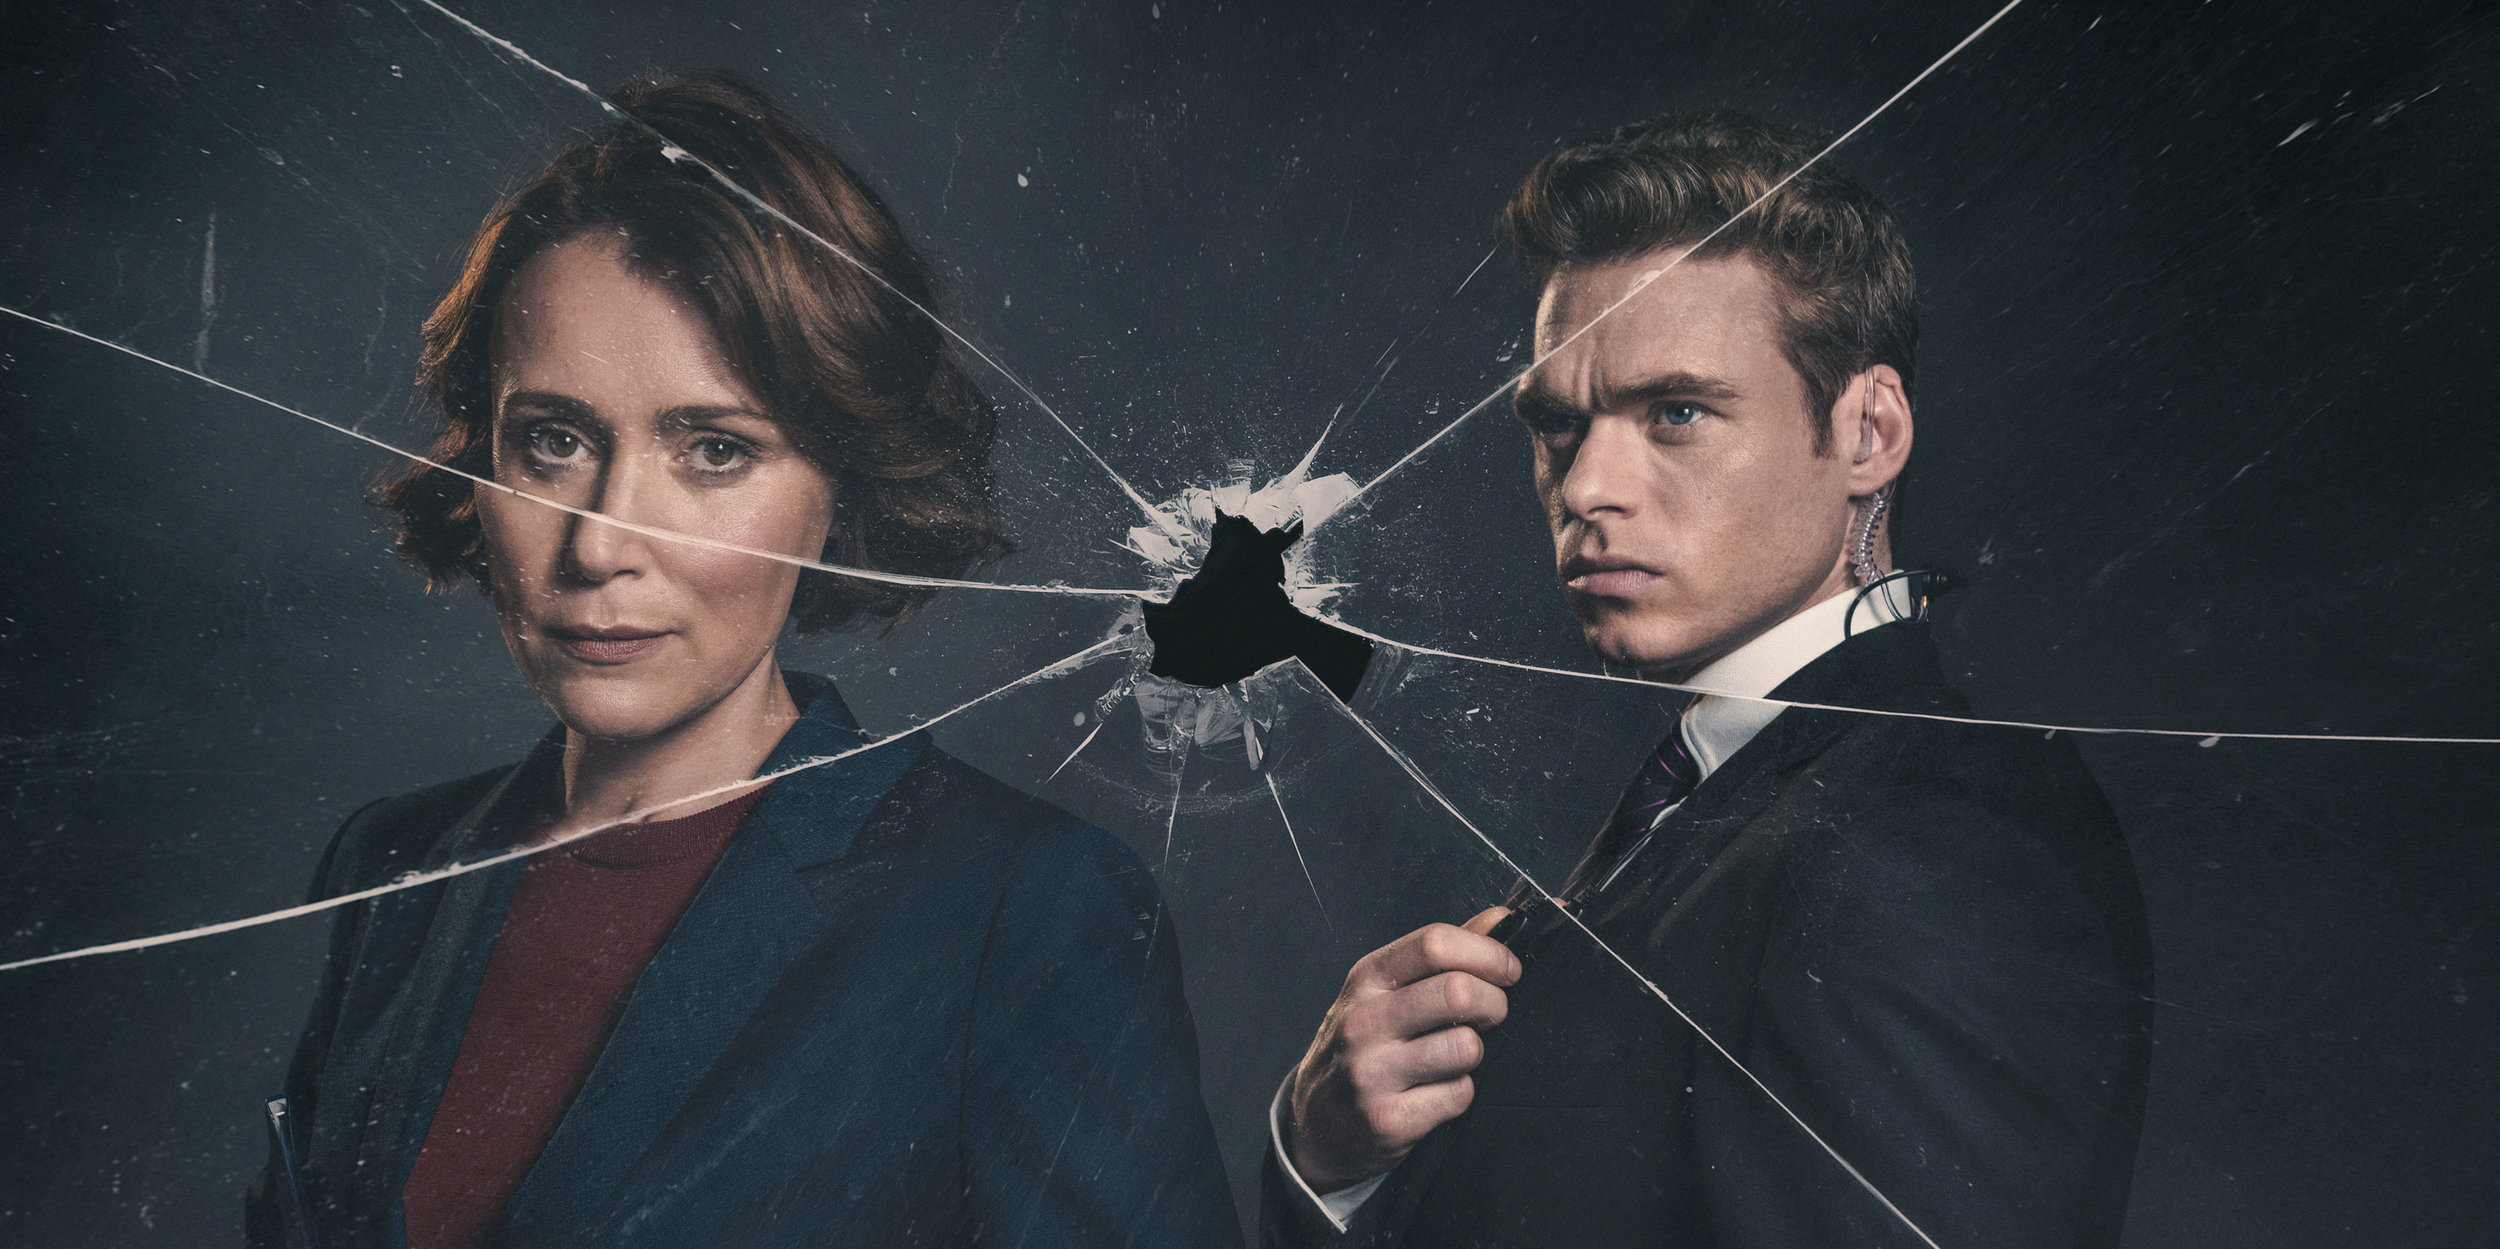 Keely Hawes and Richard Madden star in Bodyguard